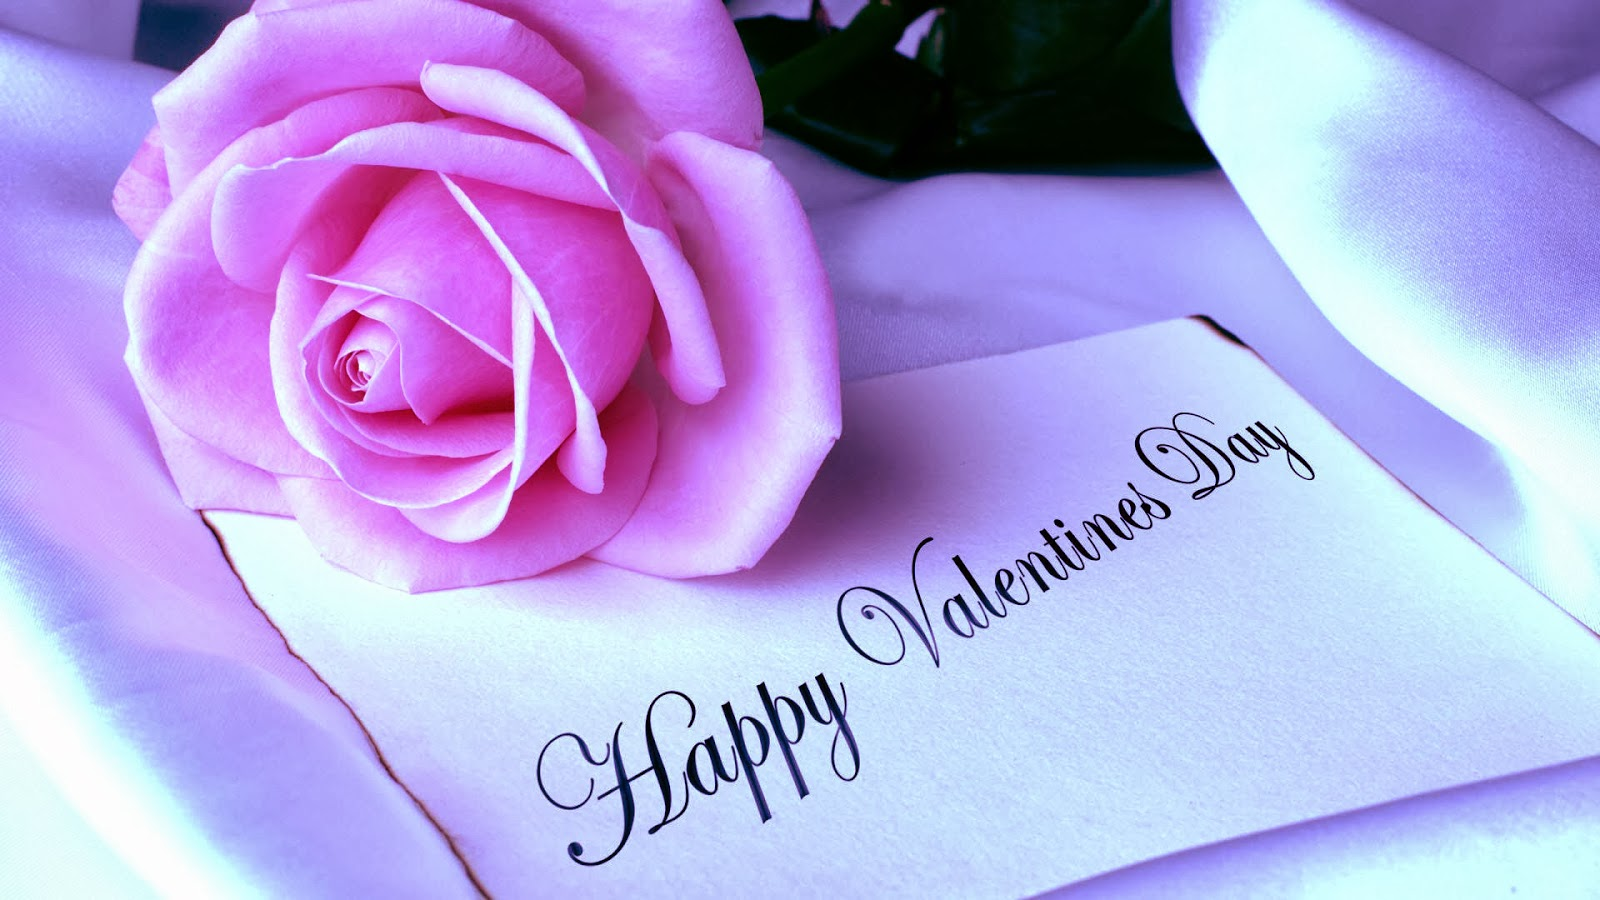 happy valentines day background happy valentines day photos happy valentines day hd wallpaper valentine wallpaper 2012 romantic couple wallpapers